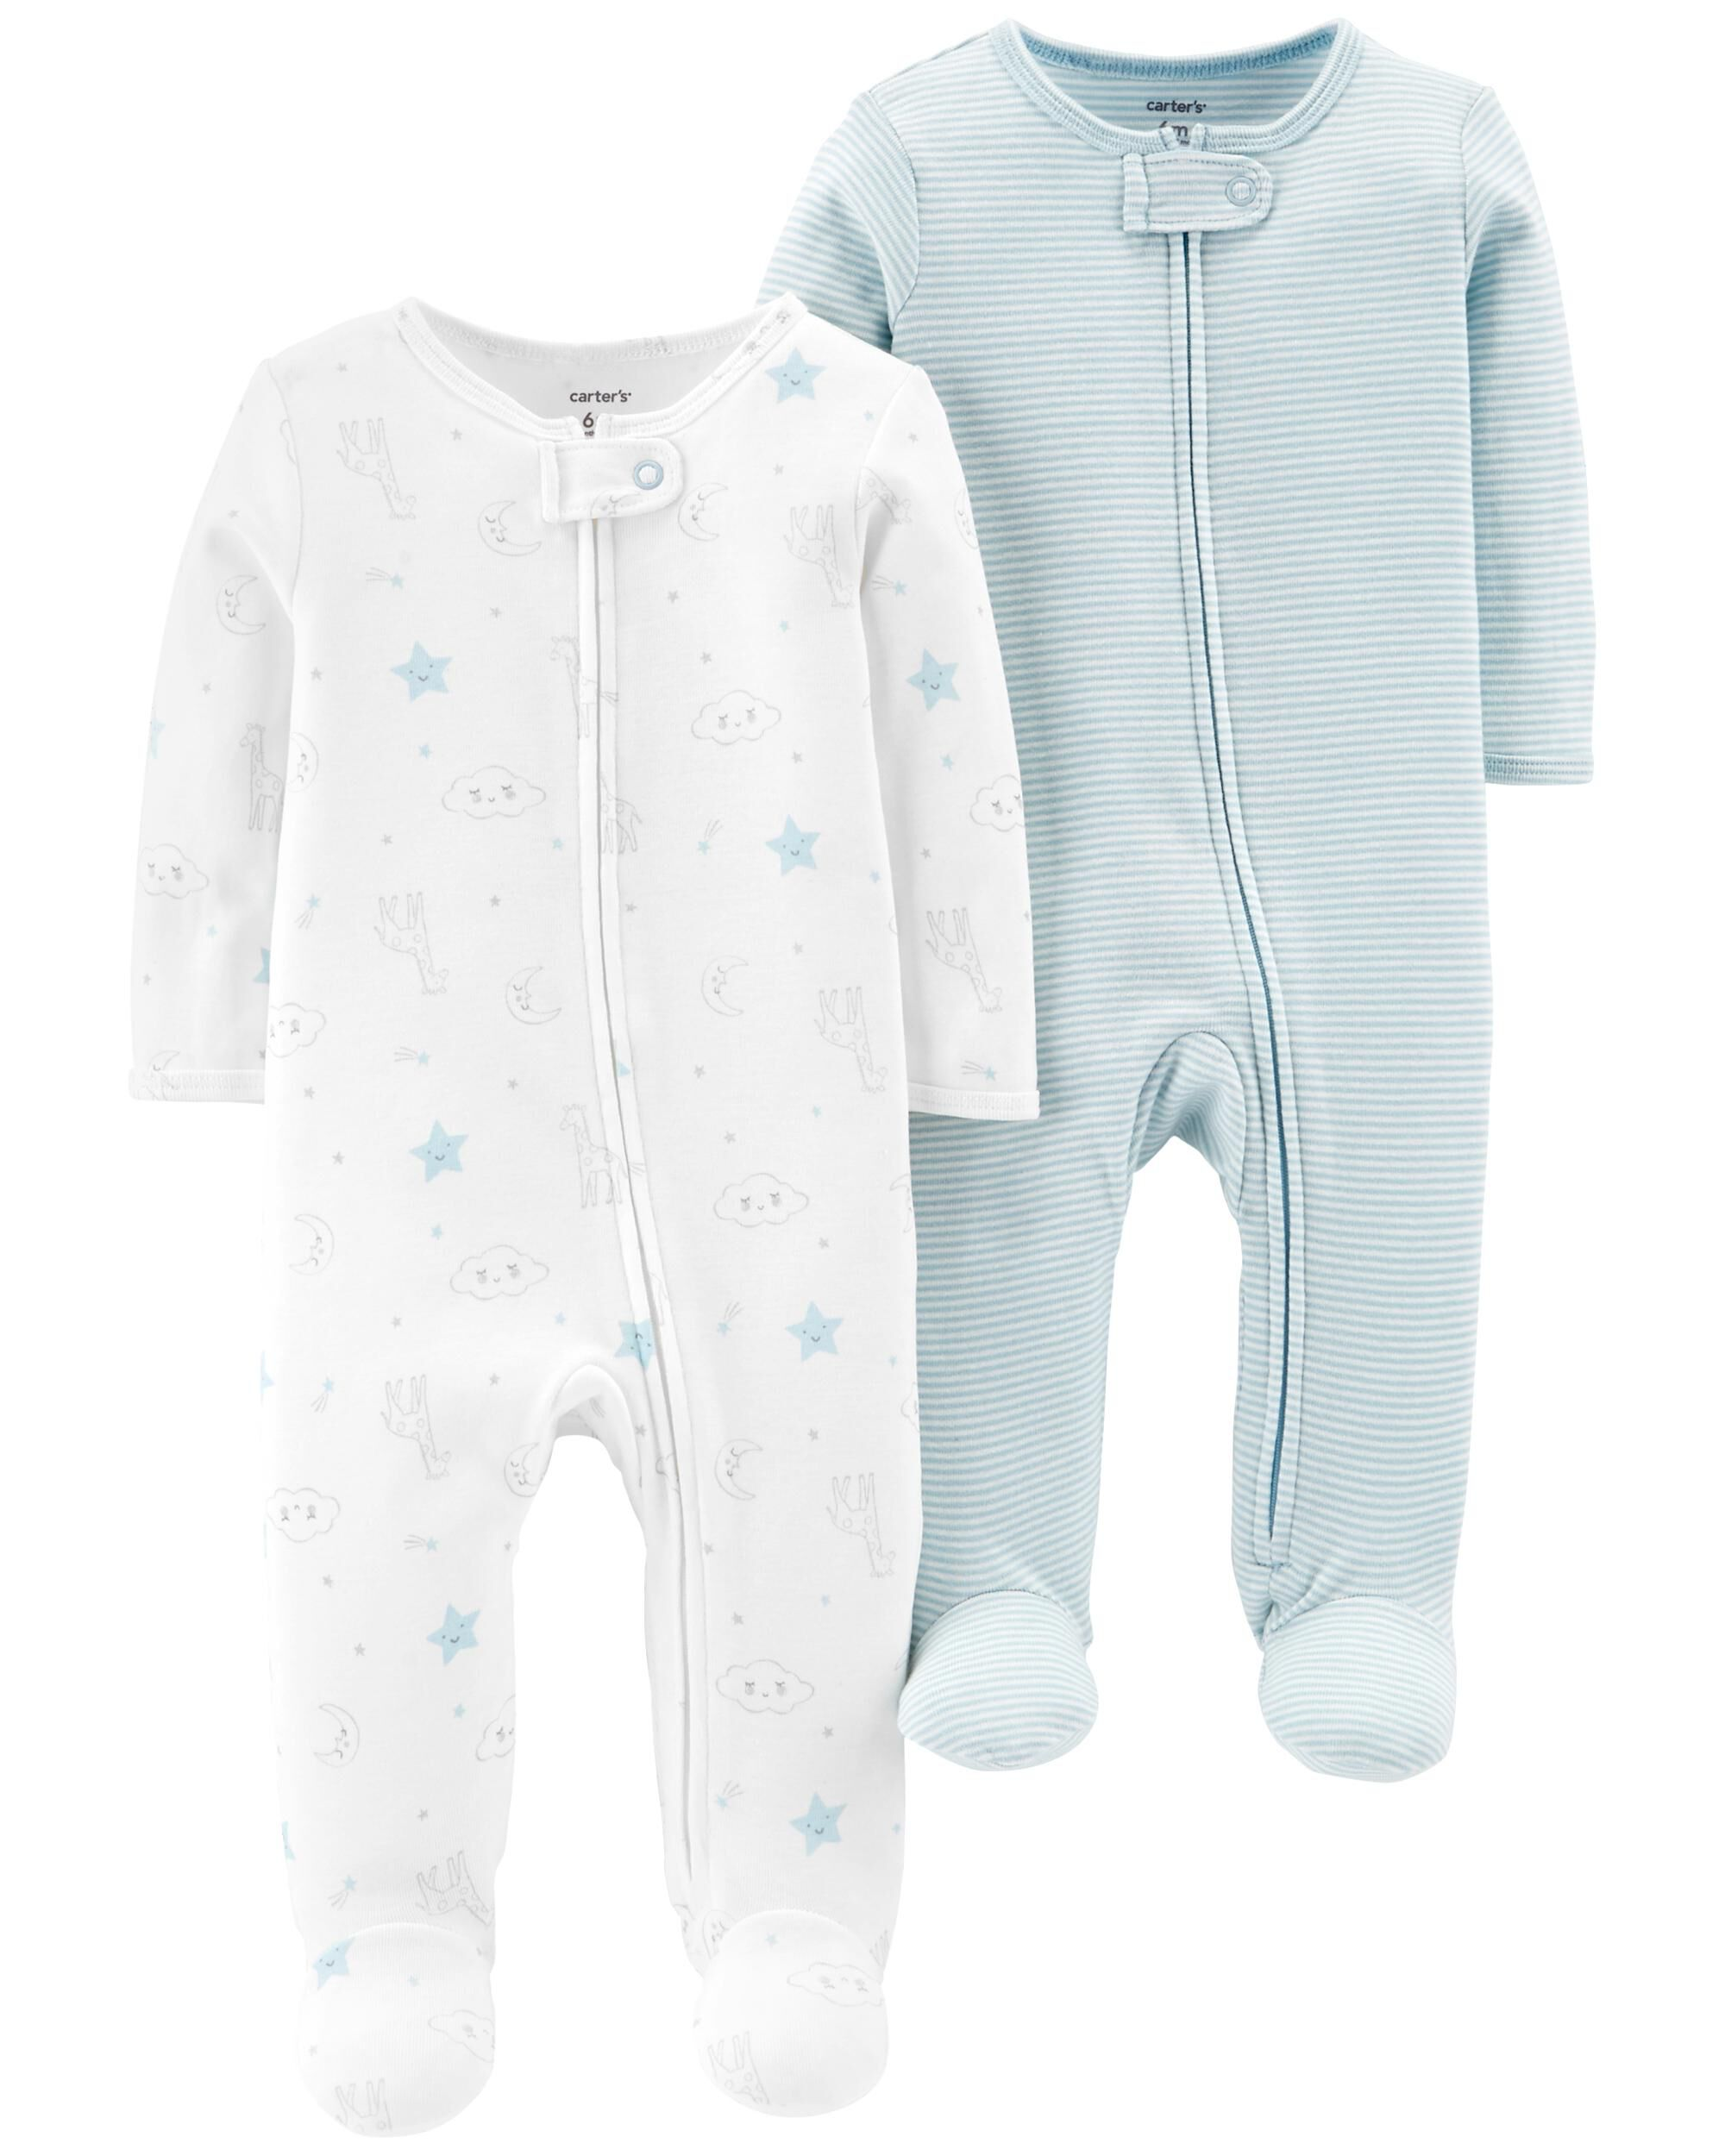 61f95e691 2-Pack Zip-Up Cotton Sleep   Play